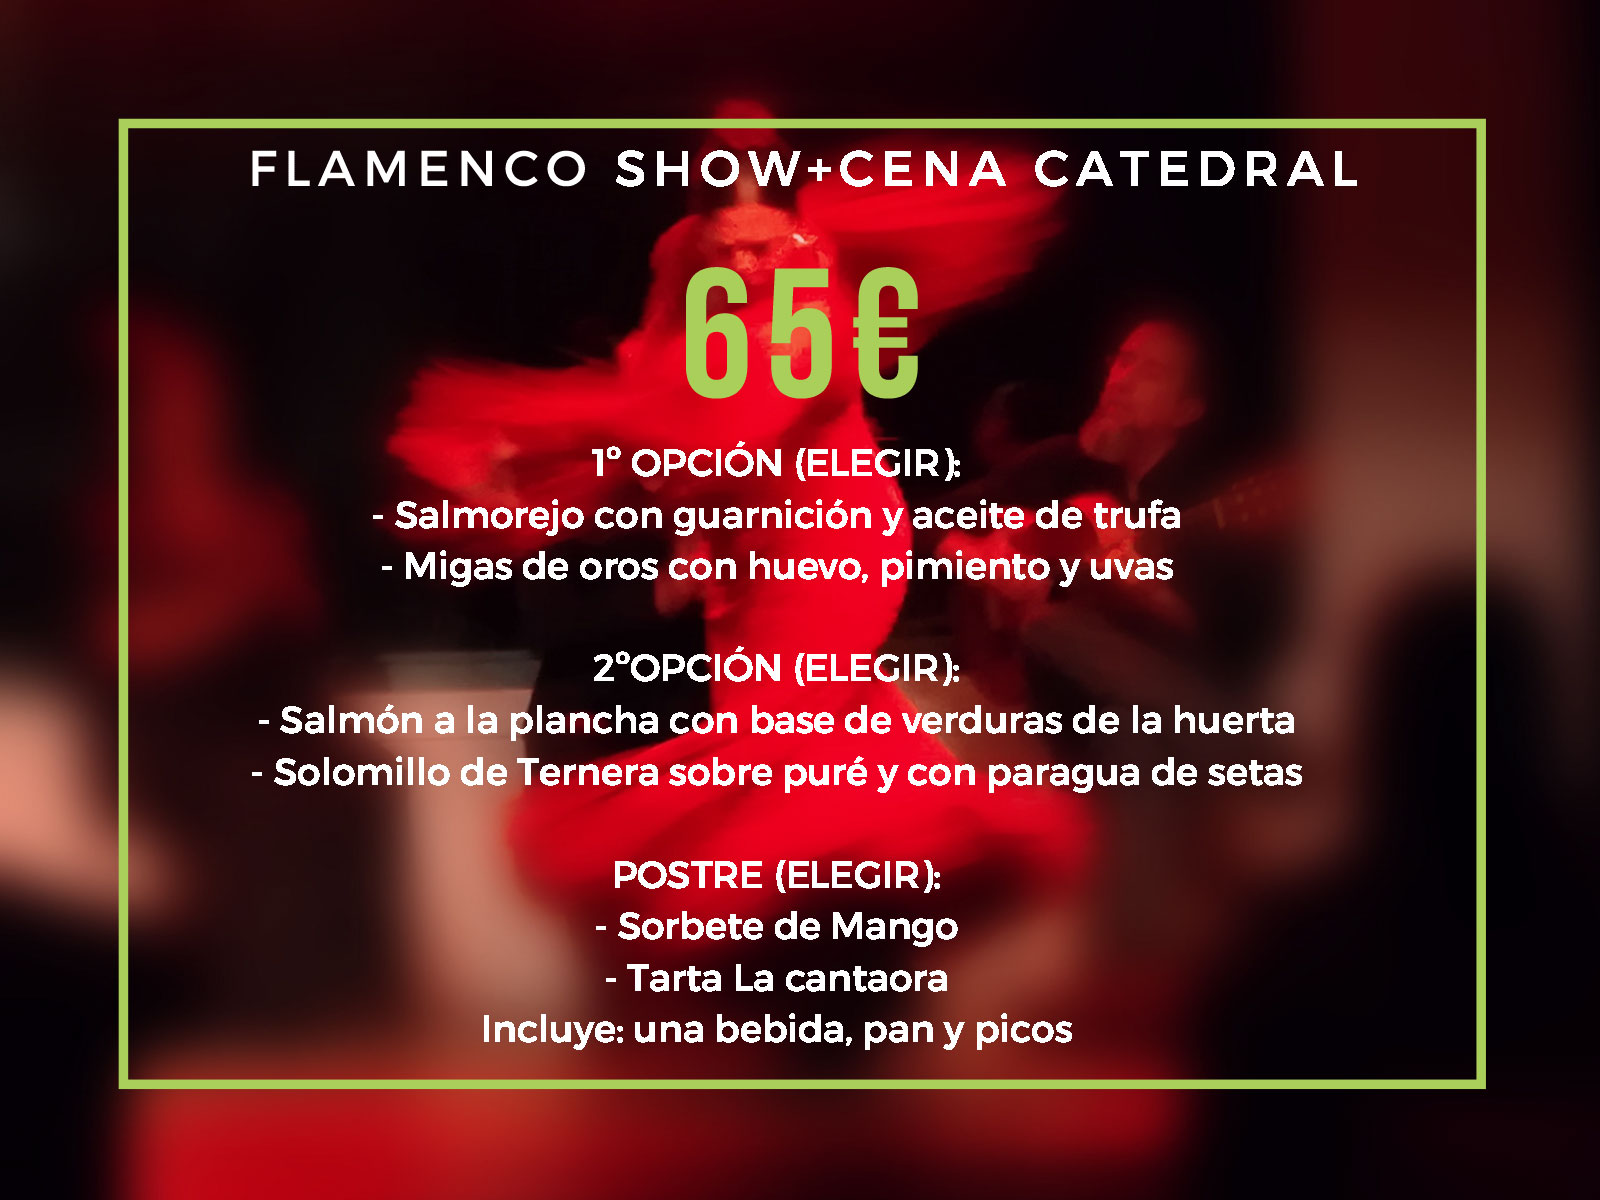 Flamenco show + cena catedral